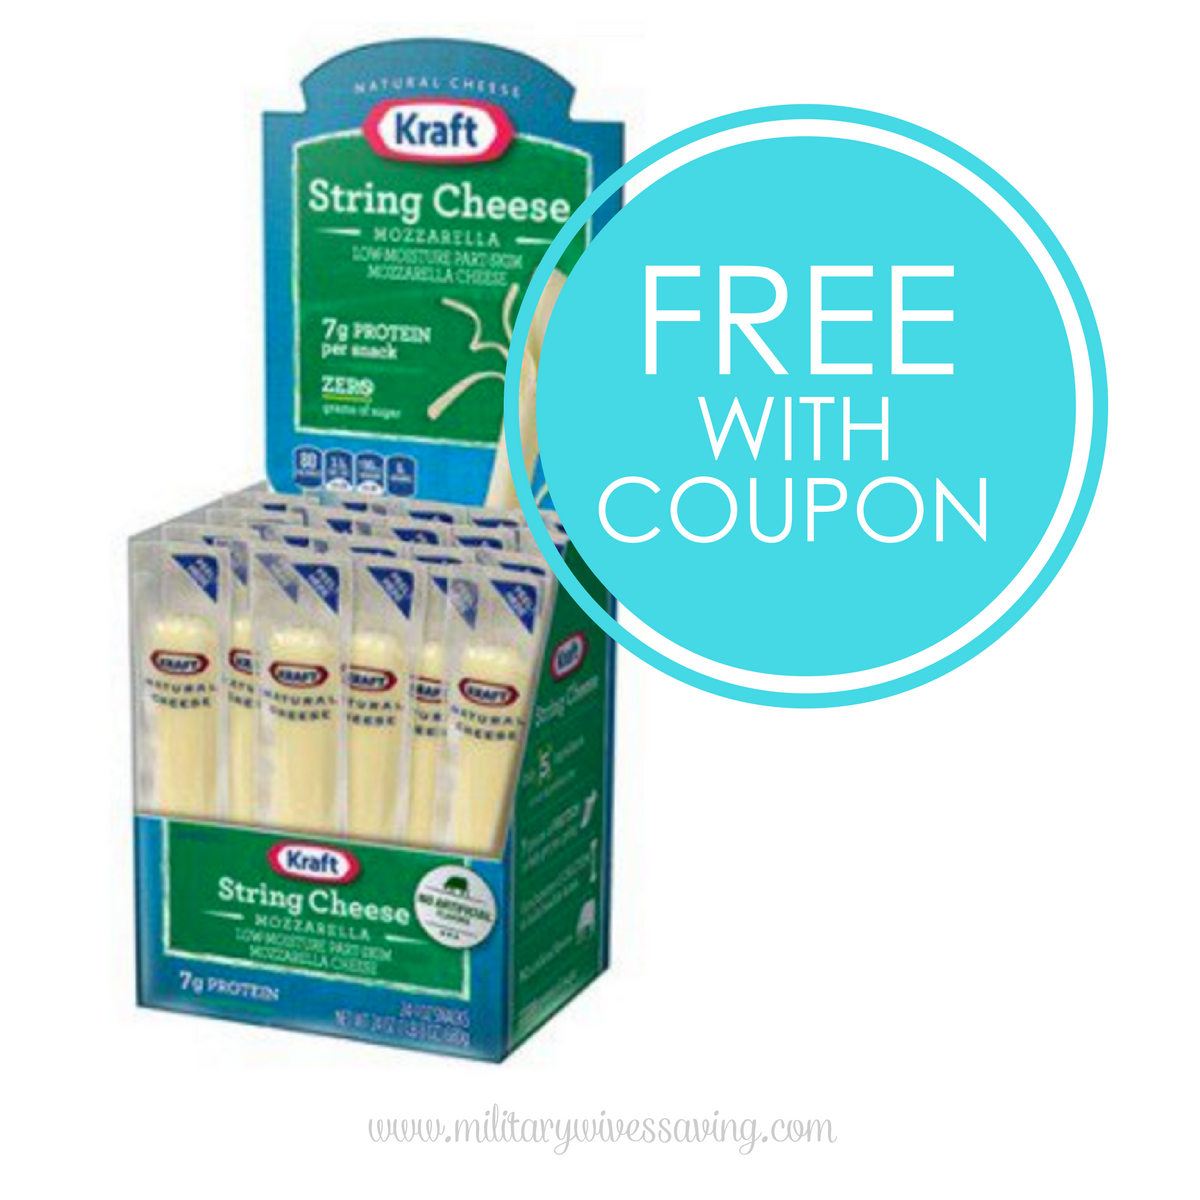 New Kraft Cheese Coupon: FREE at Commissary, Walmart